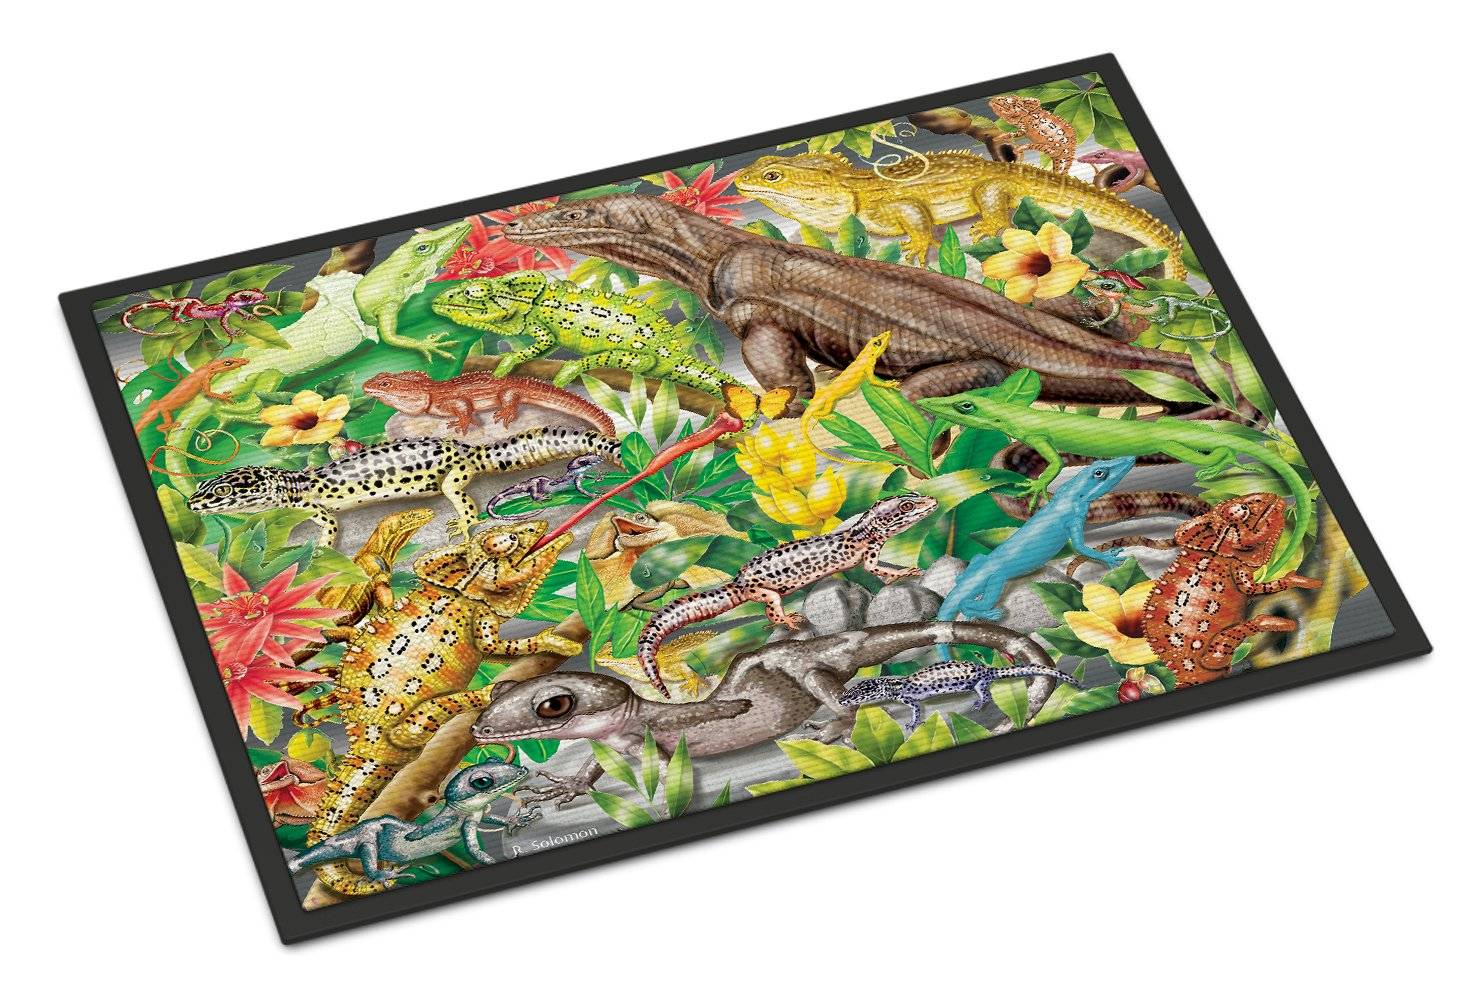 Lizard Jungle Indoor or Outdoor Mat 24x36 PRS4047JMAT by Caroline's Treasures